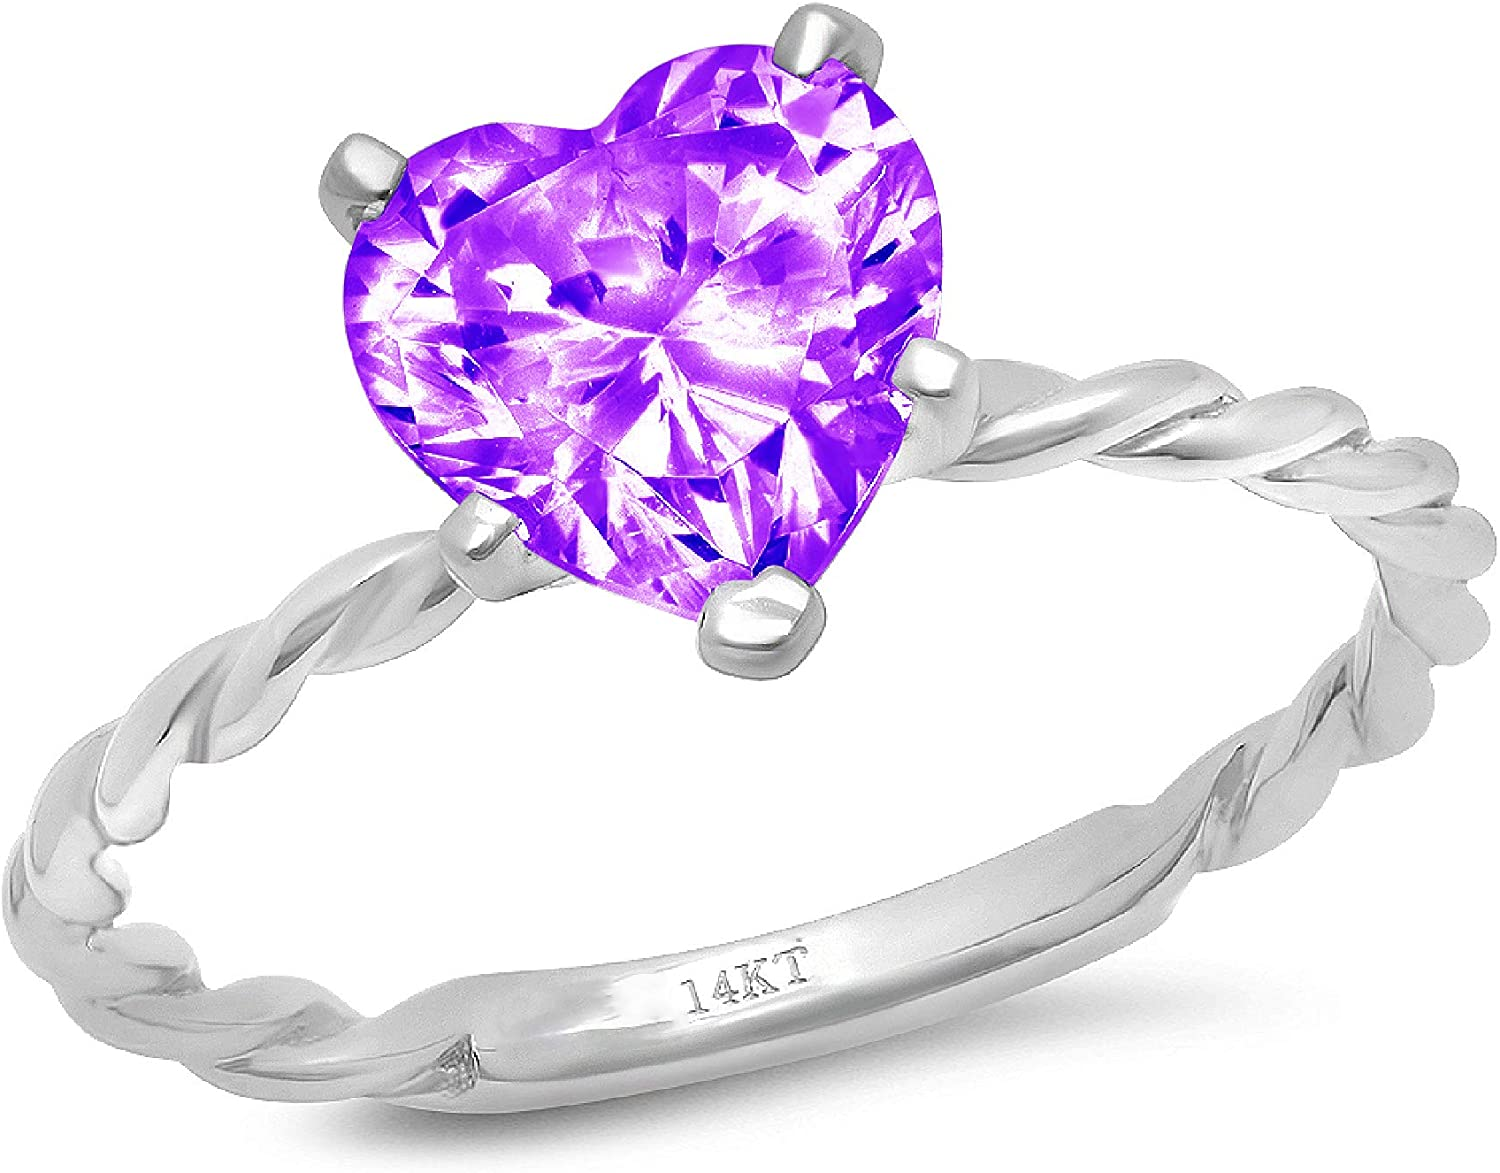 1.9ct Brilliant Heart Cut Solitaire Rope Twisted Knot Natural Purple Amethyst Ideal VVS1 5-Prong Engagement Wedding Bridal Promise Anniversary Ring Solid 14k White Gold for Women